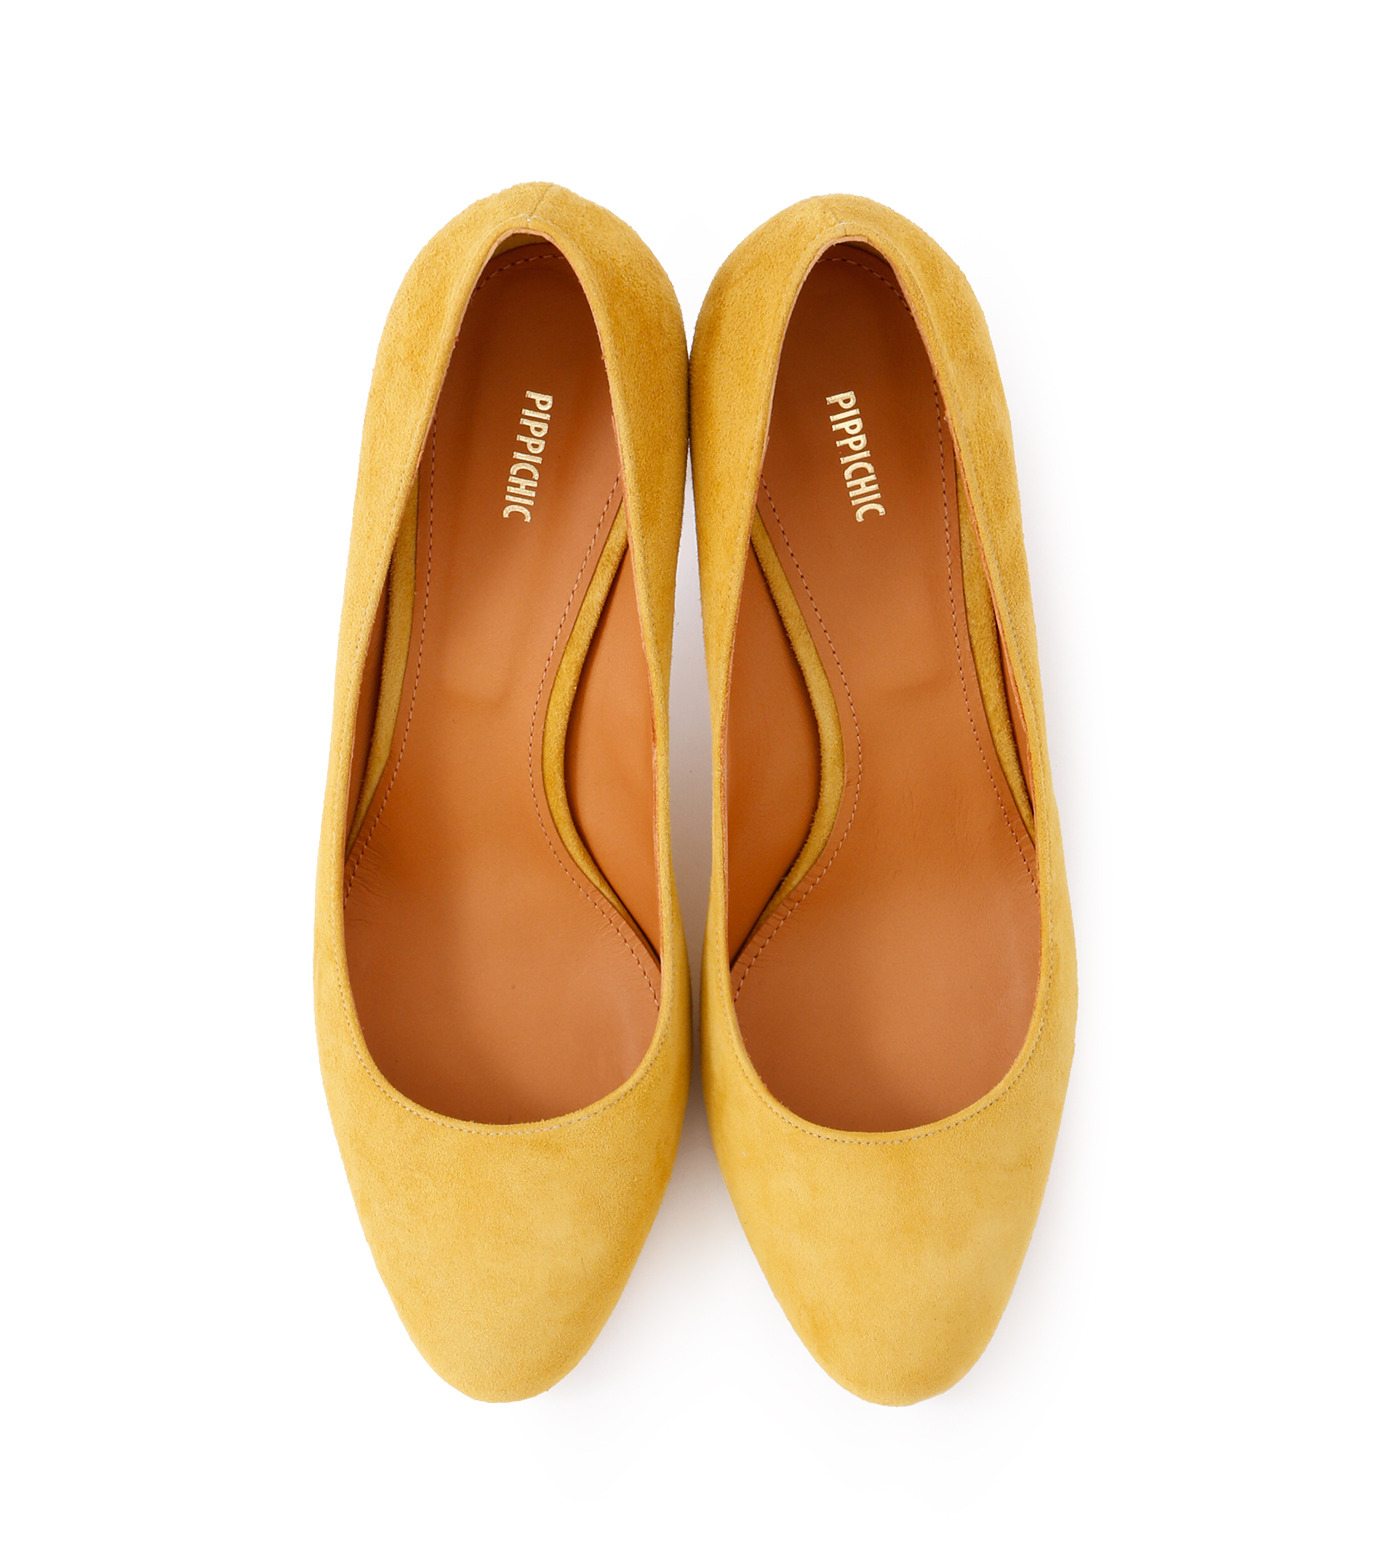 PIPPICHIC(ピッピシック)のInstorm Round Toe Pumps-YELLOW(パンプス/pumps)-PP16-IRP26-L 拡大詳細画像4